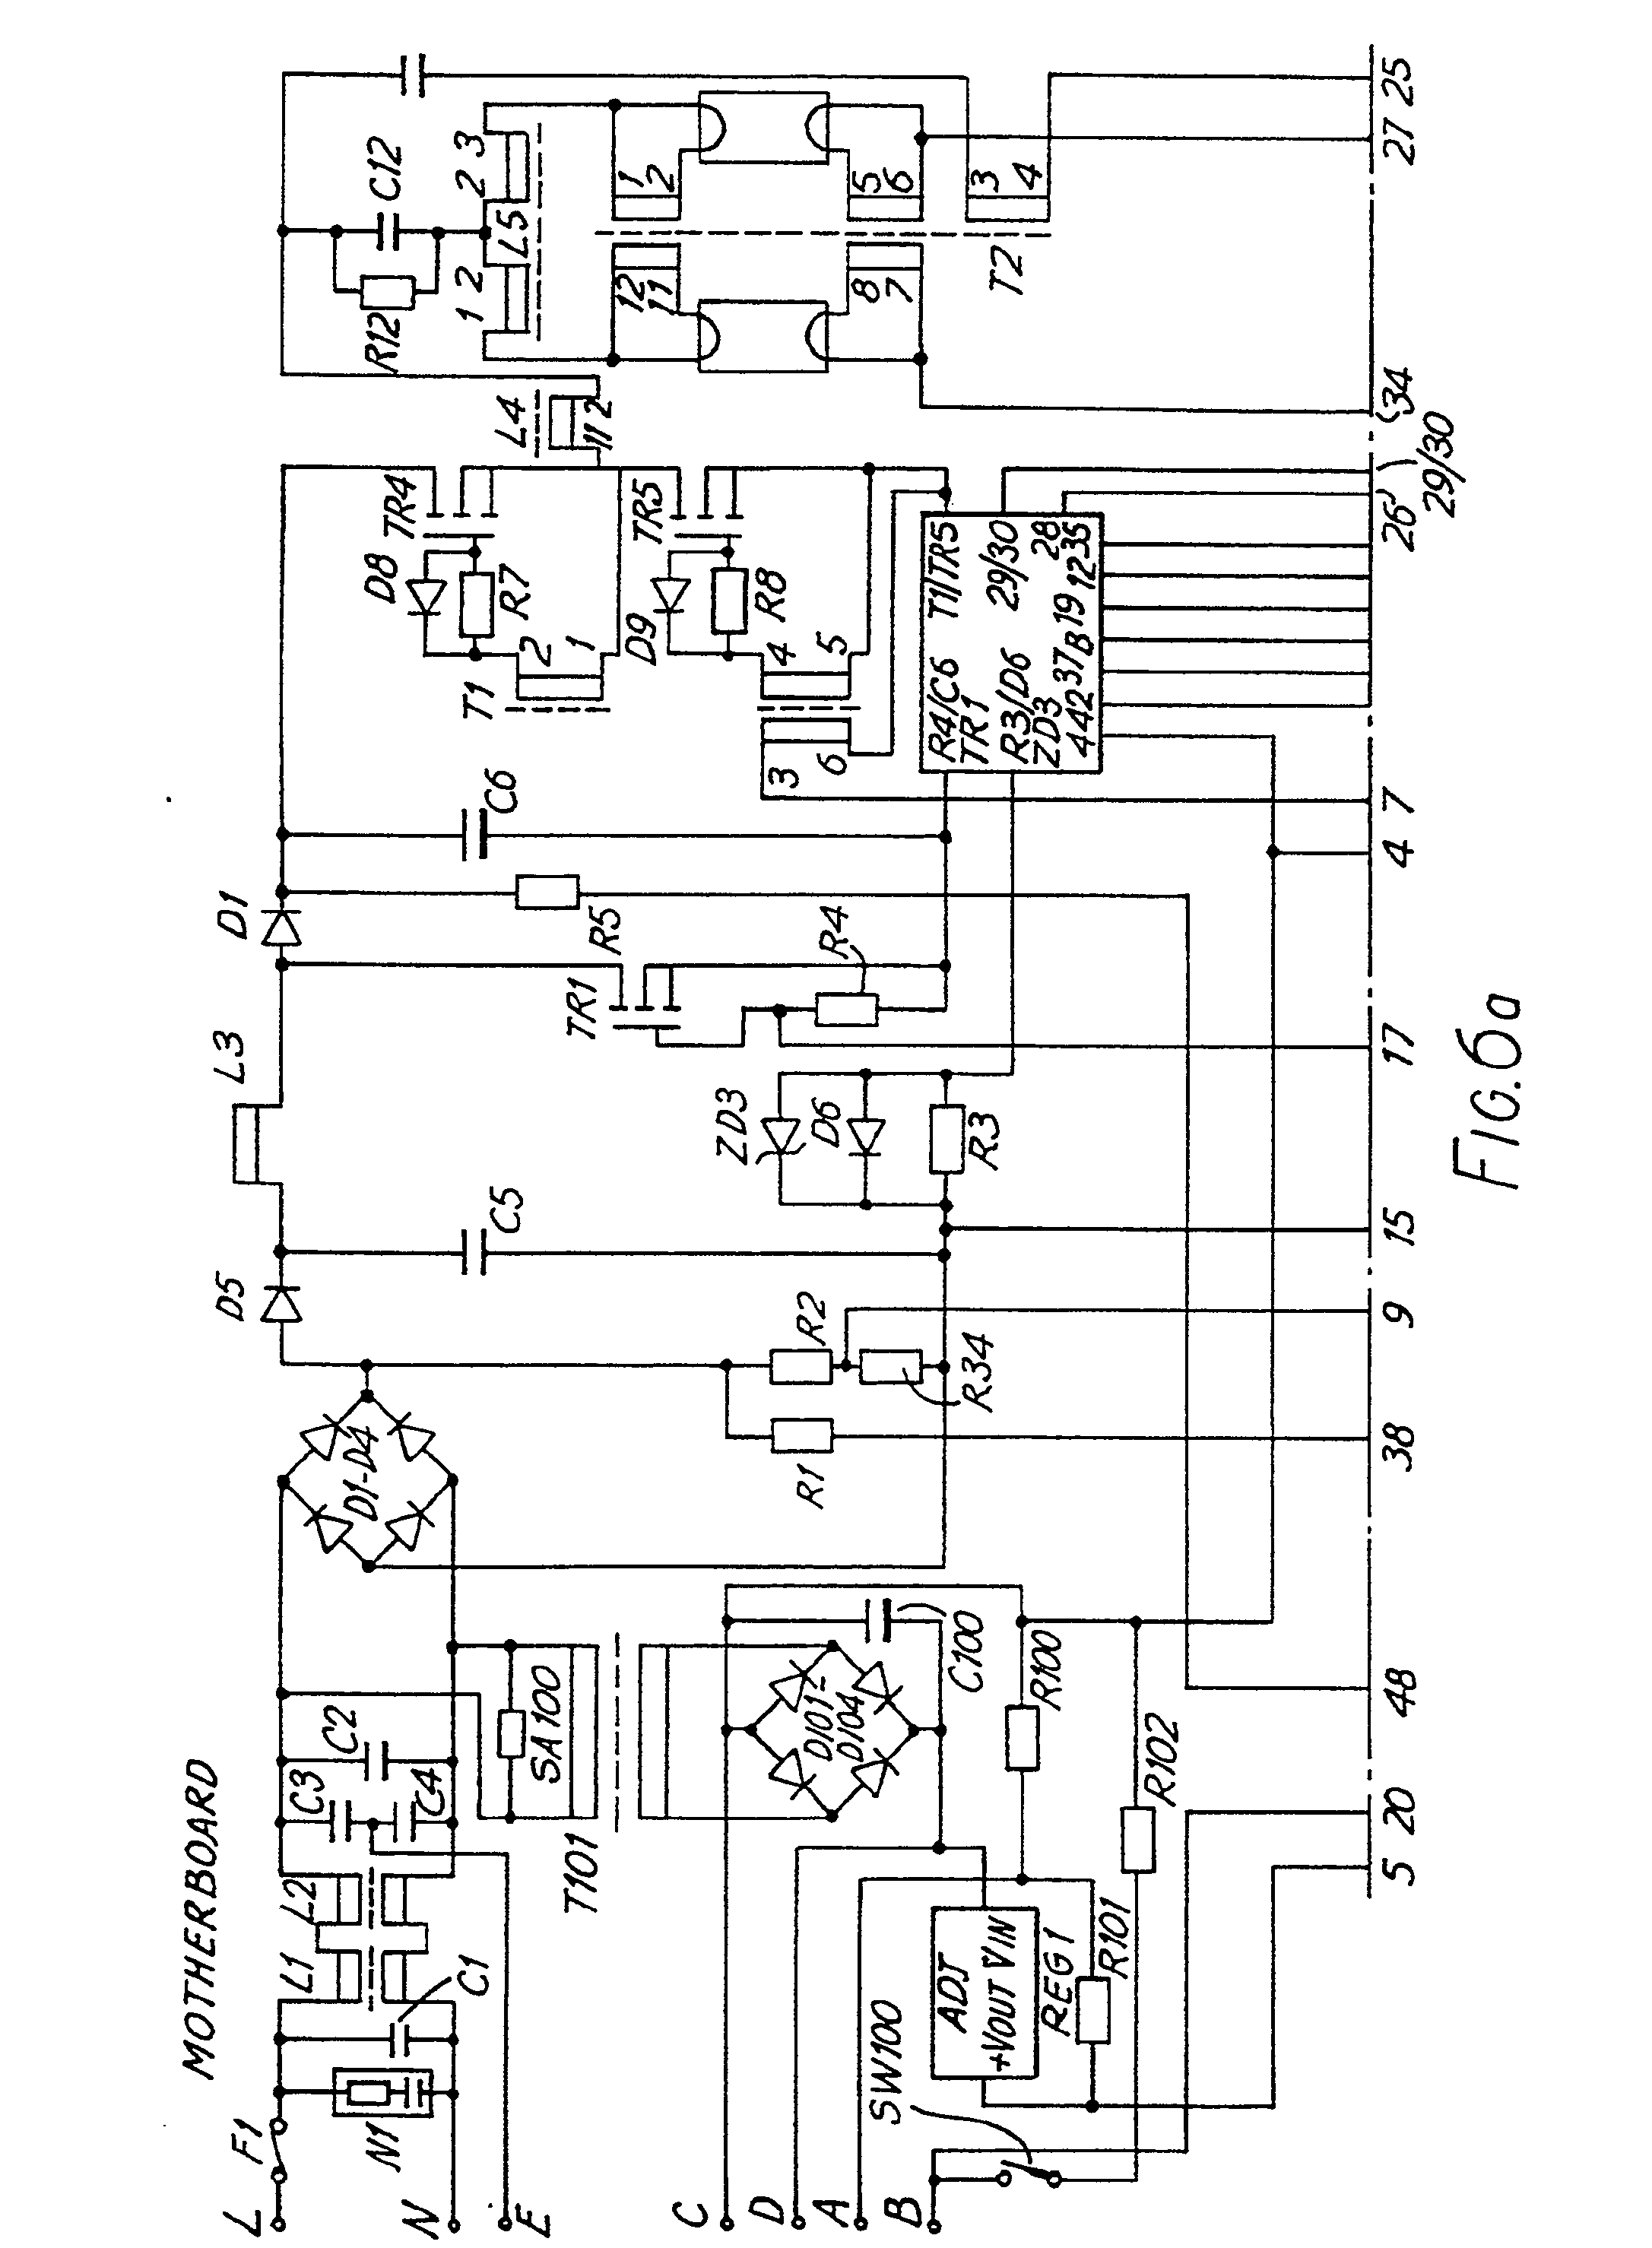 imgf0005 patent ep0447136a2 a method for automatic switching and control helvar ballast wiring diagram at soozxer.org